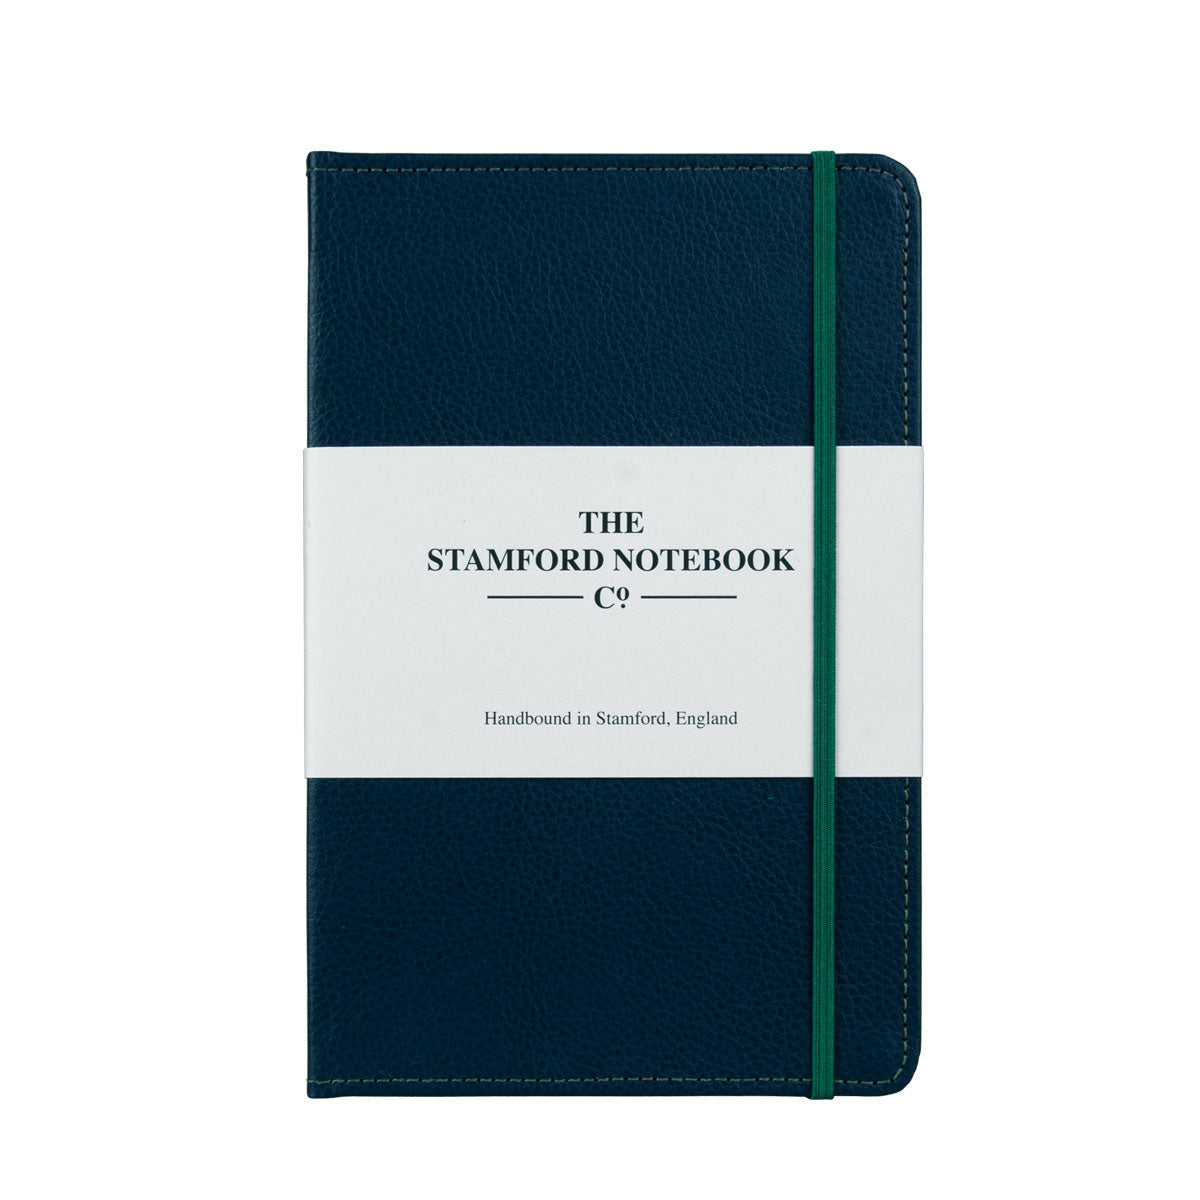 Marine Blue leather notebook with green stitching